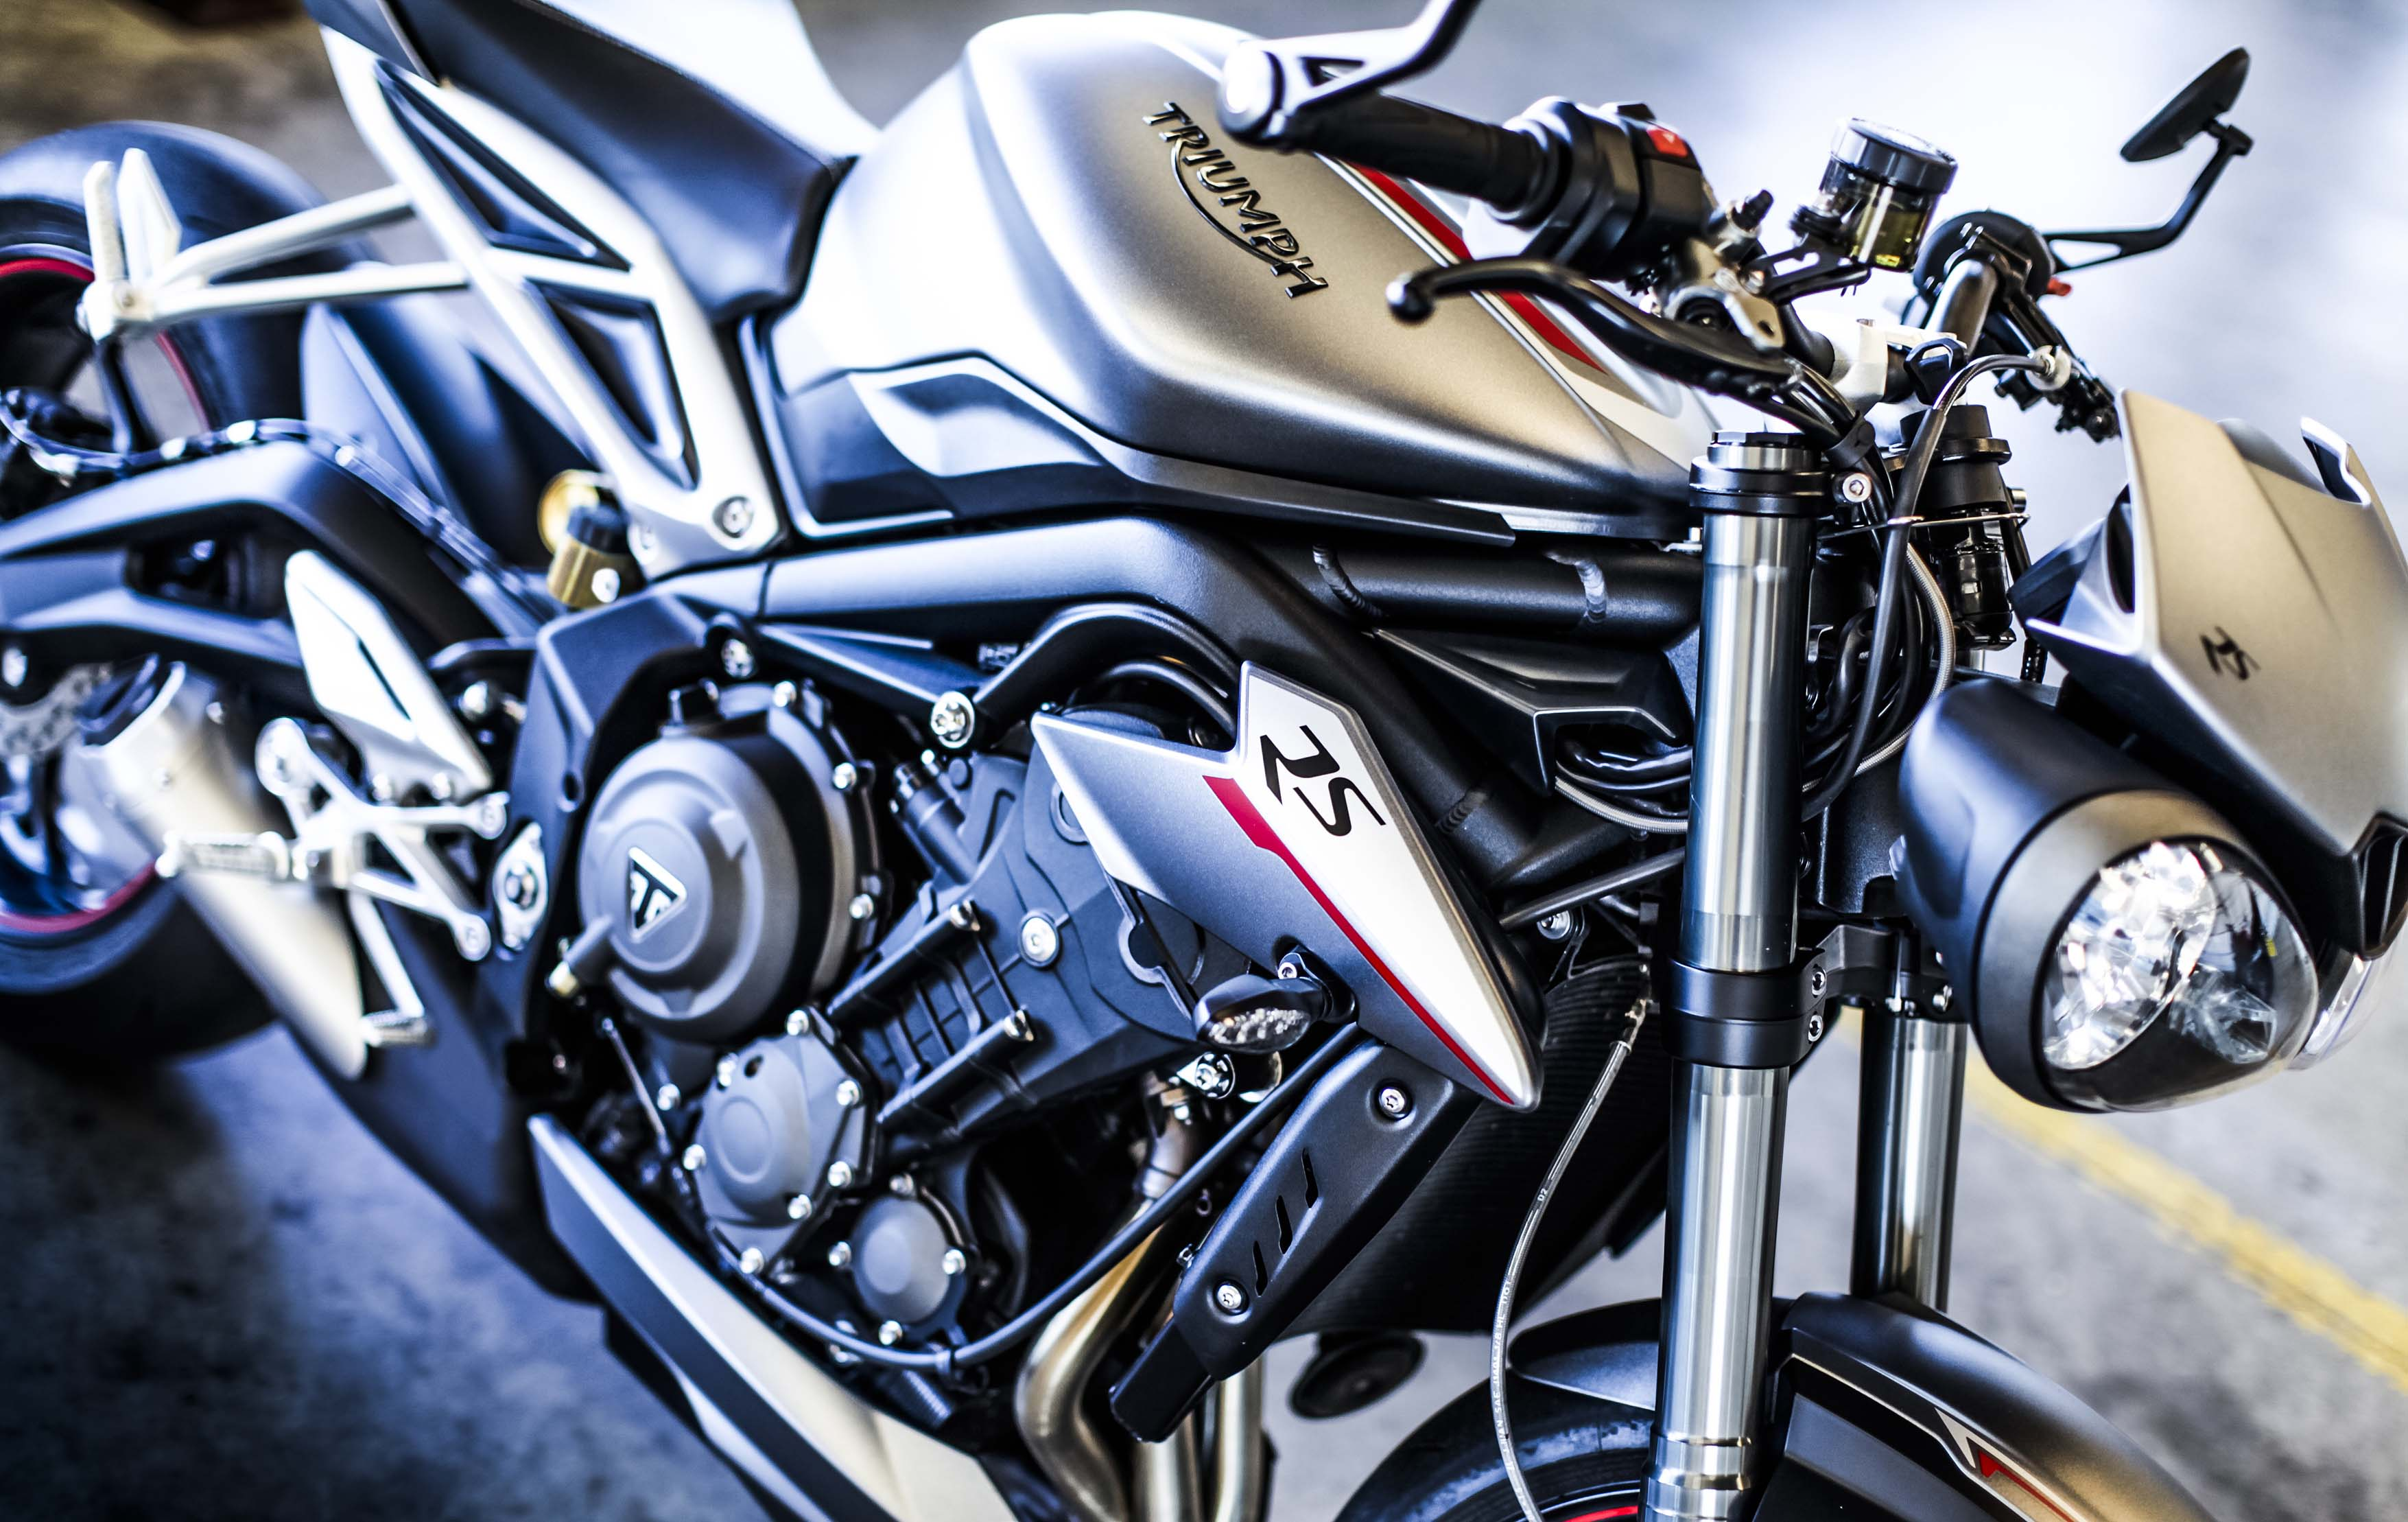 triumph street triple r wiring diagram 2 wire thermostat 2017 debuts with 765cc engine